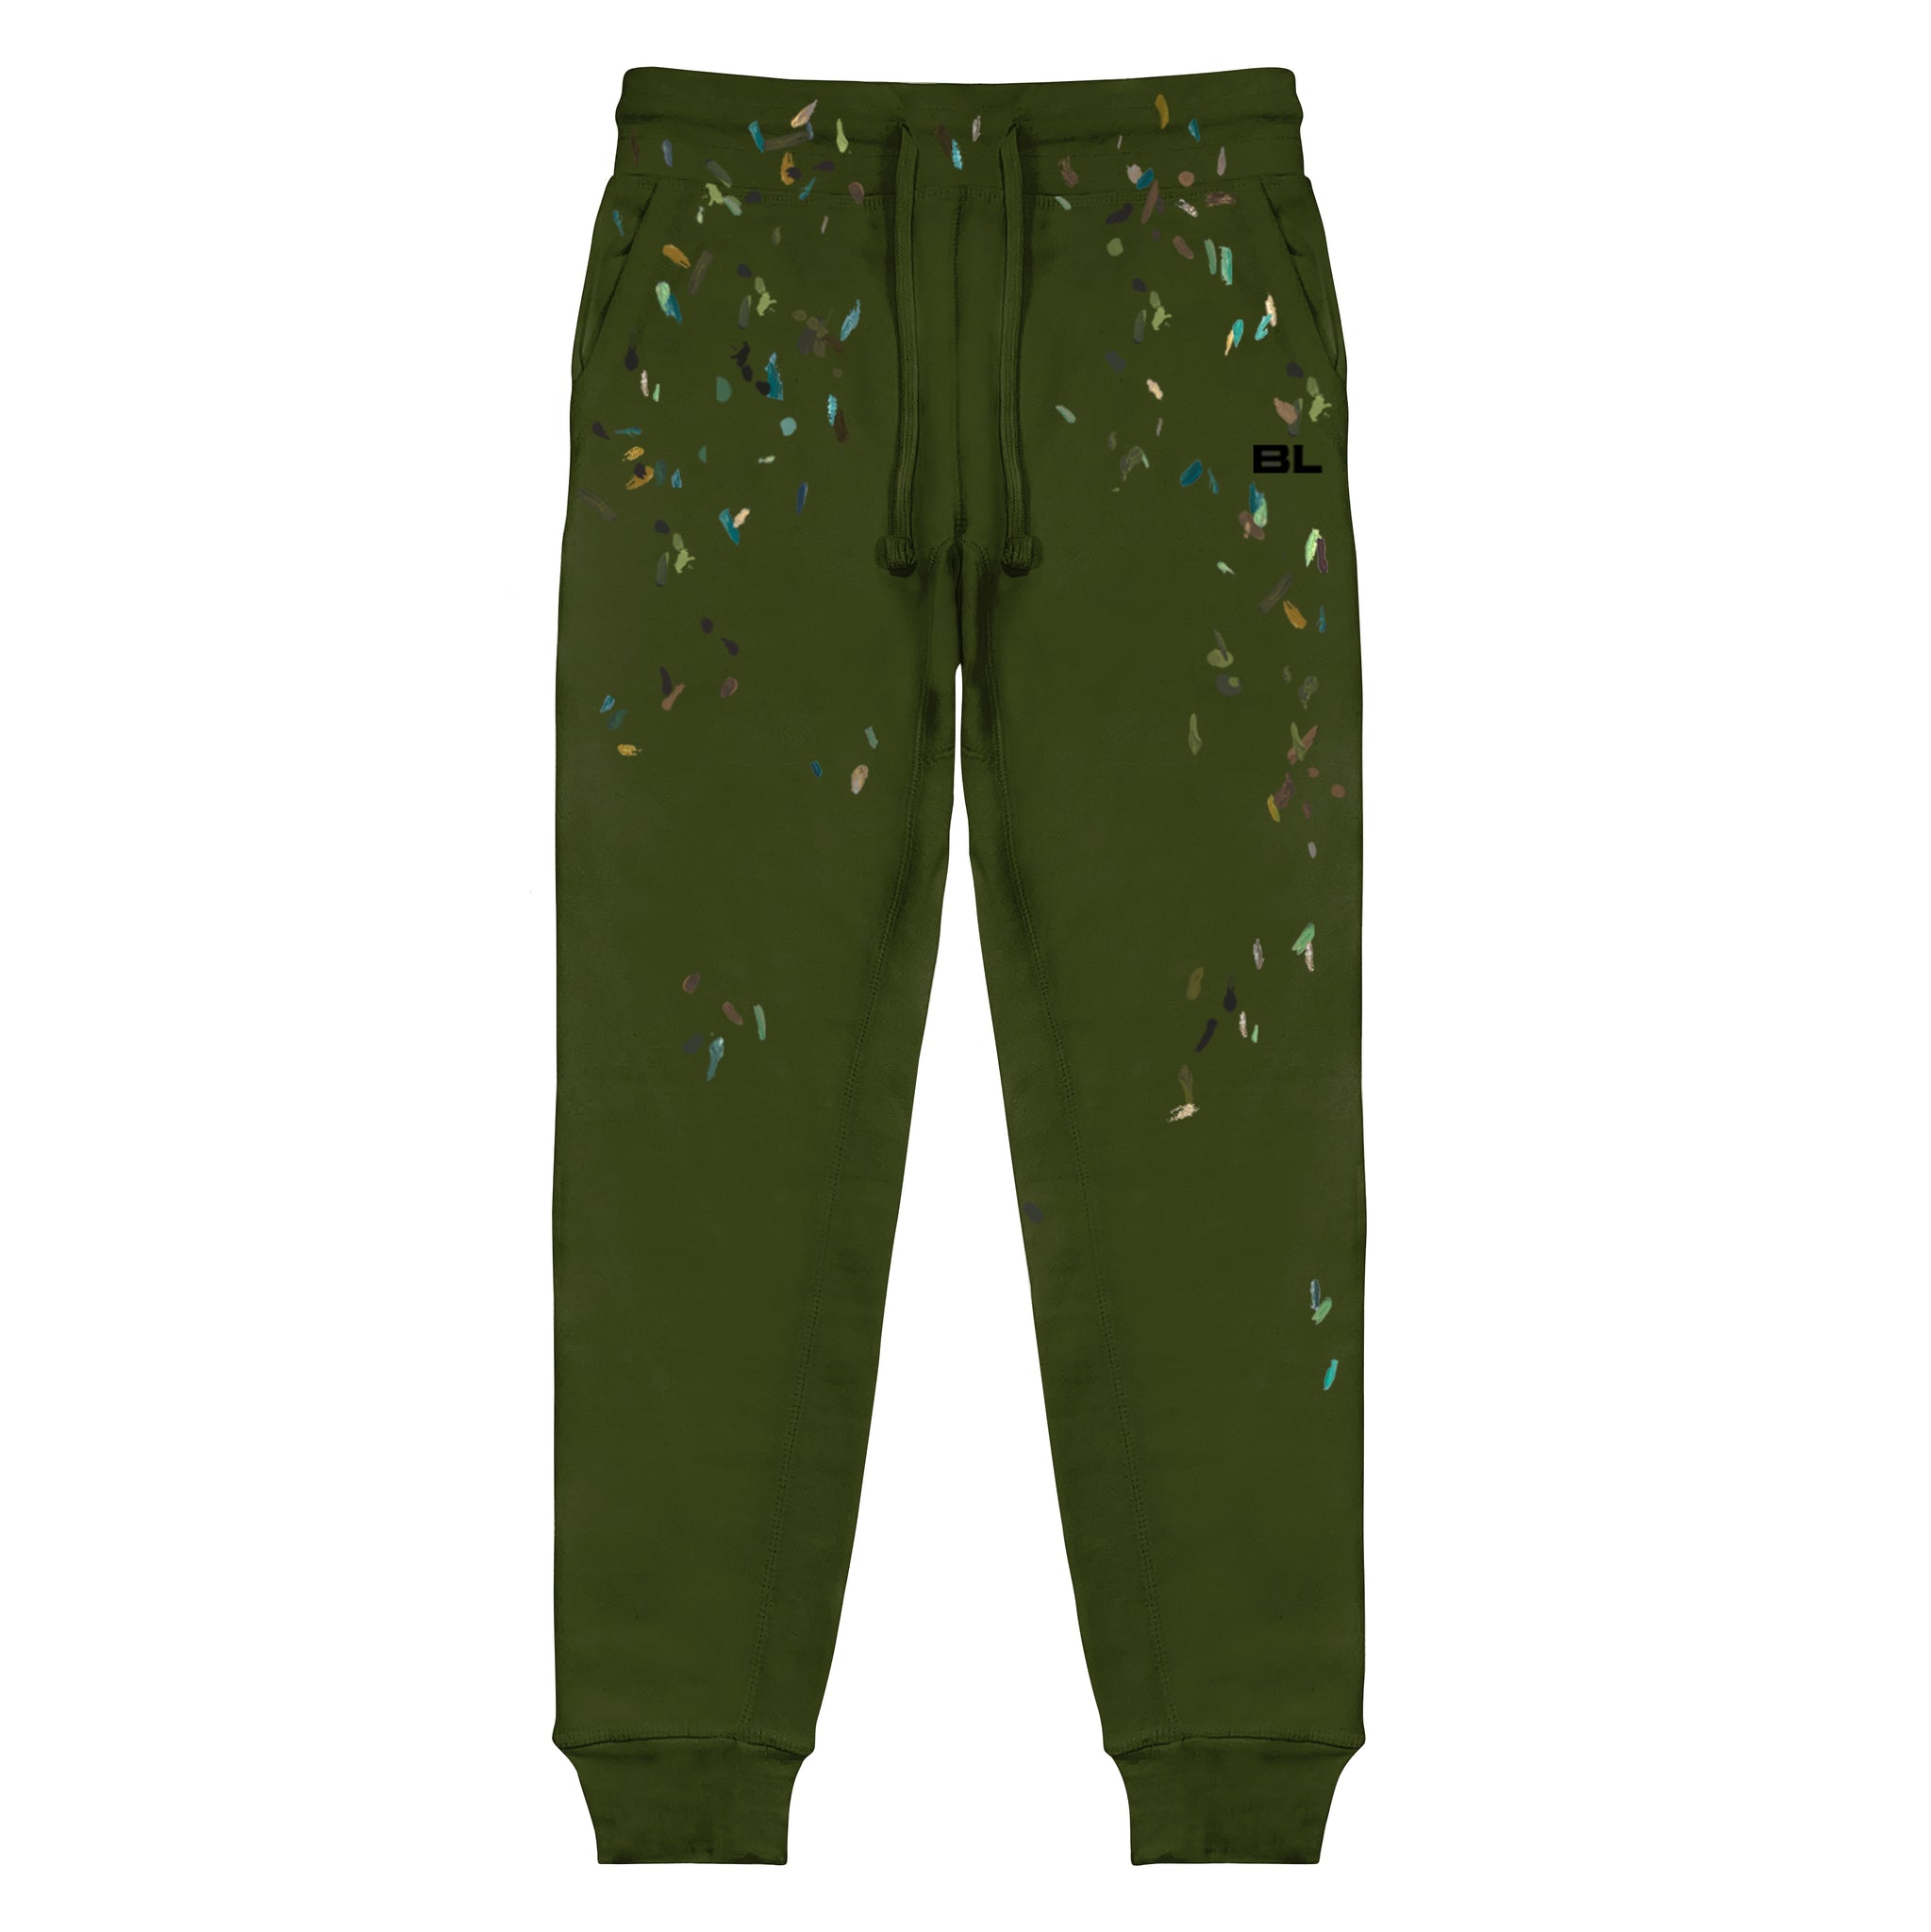 BL PAINT SWEATPANTS